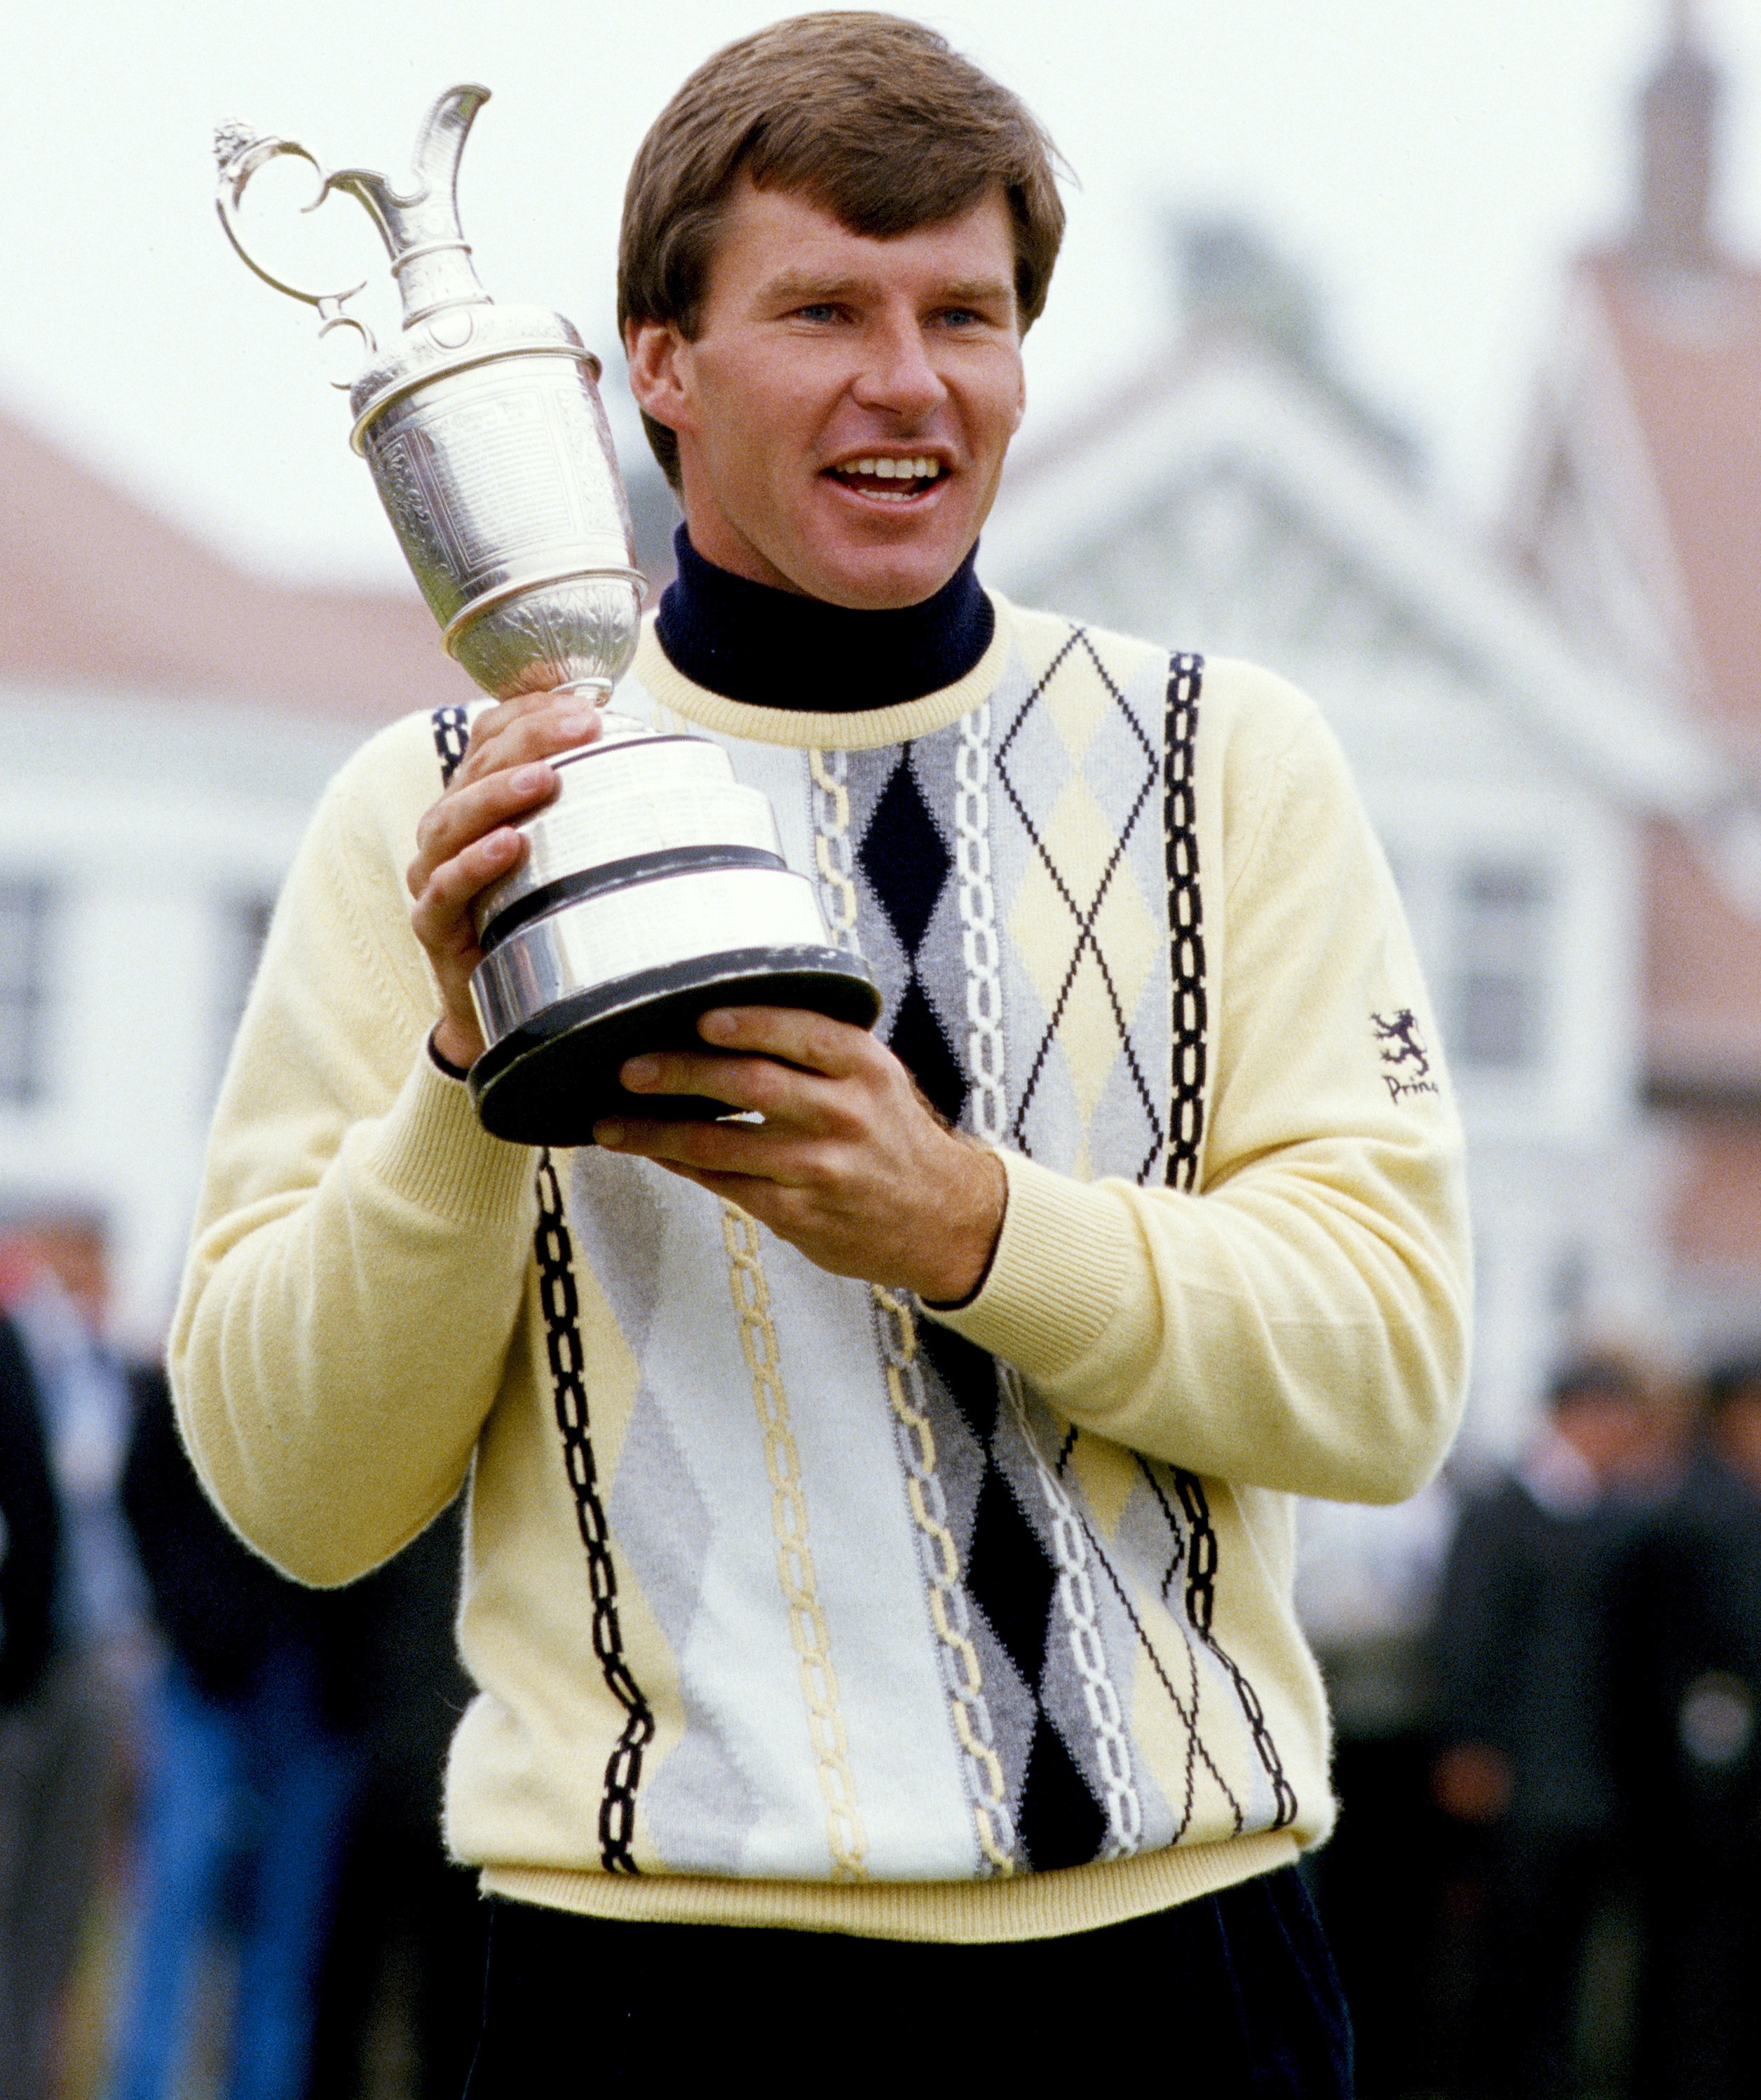 The breakthrough came in 1987, when Faldo won the Open at Muirfield for a maiden major title. He carded 18 straight pars in the final round to finish one stroke ahead of Paul Azinger and Rodger Davis in what was the first Open triumph by an Englishman since Tony Jacklin in 1969 (Photo: Getty Images)